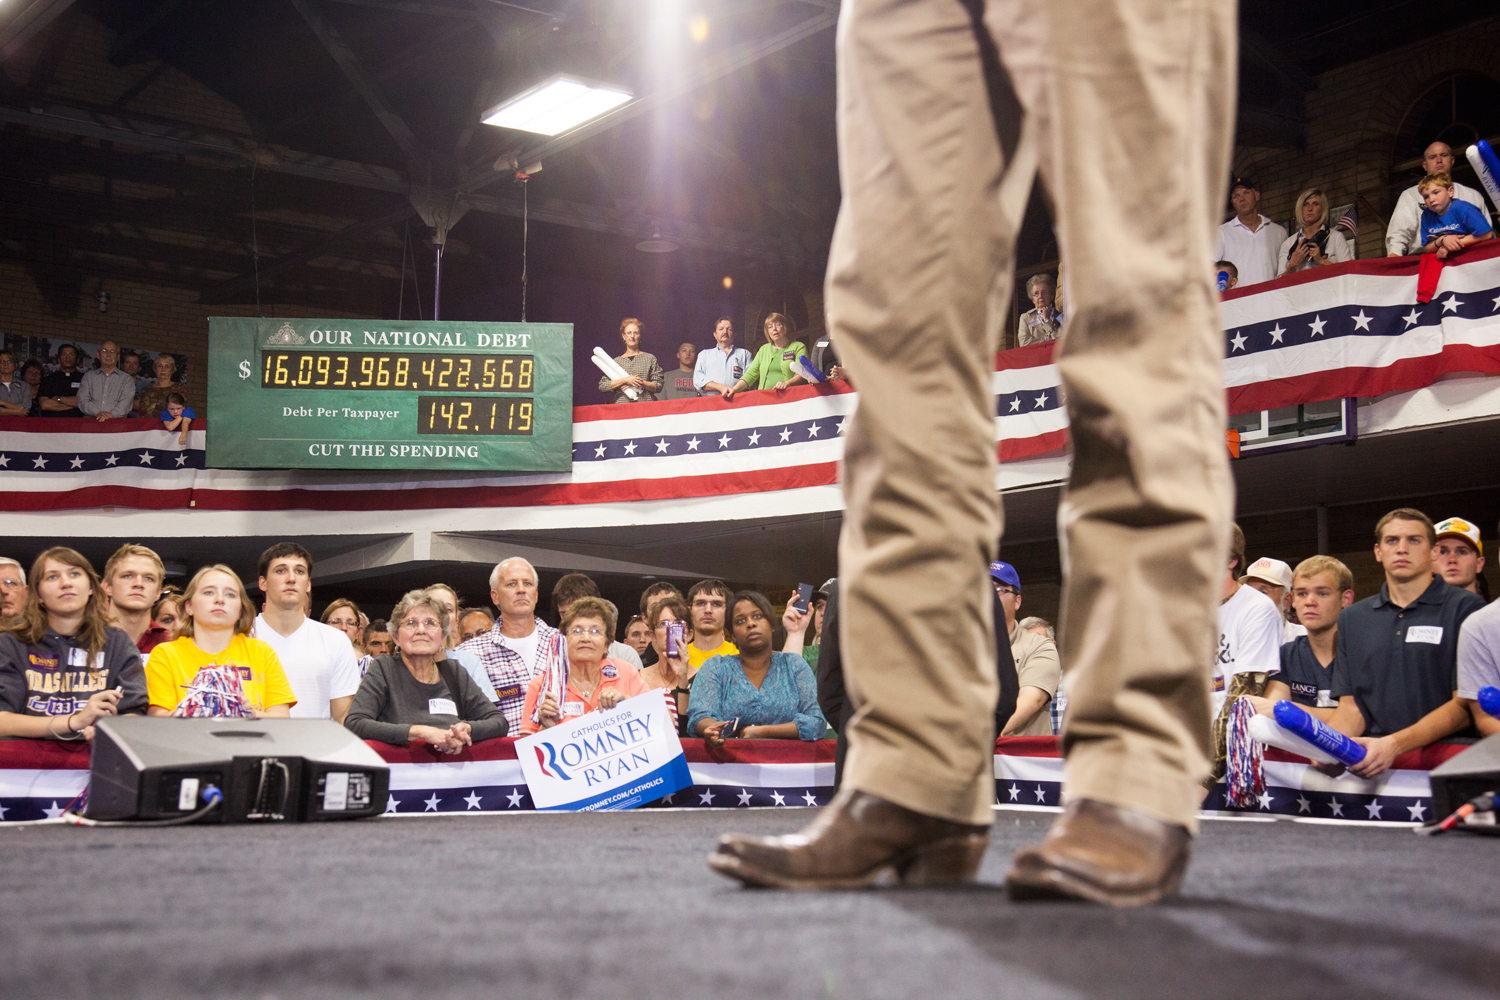 Paul Ryan onstage at the Dubuque Victory Rally and Bus Tour Kickoff in Dubuque, Iowa. Oct. 1, 2012.